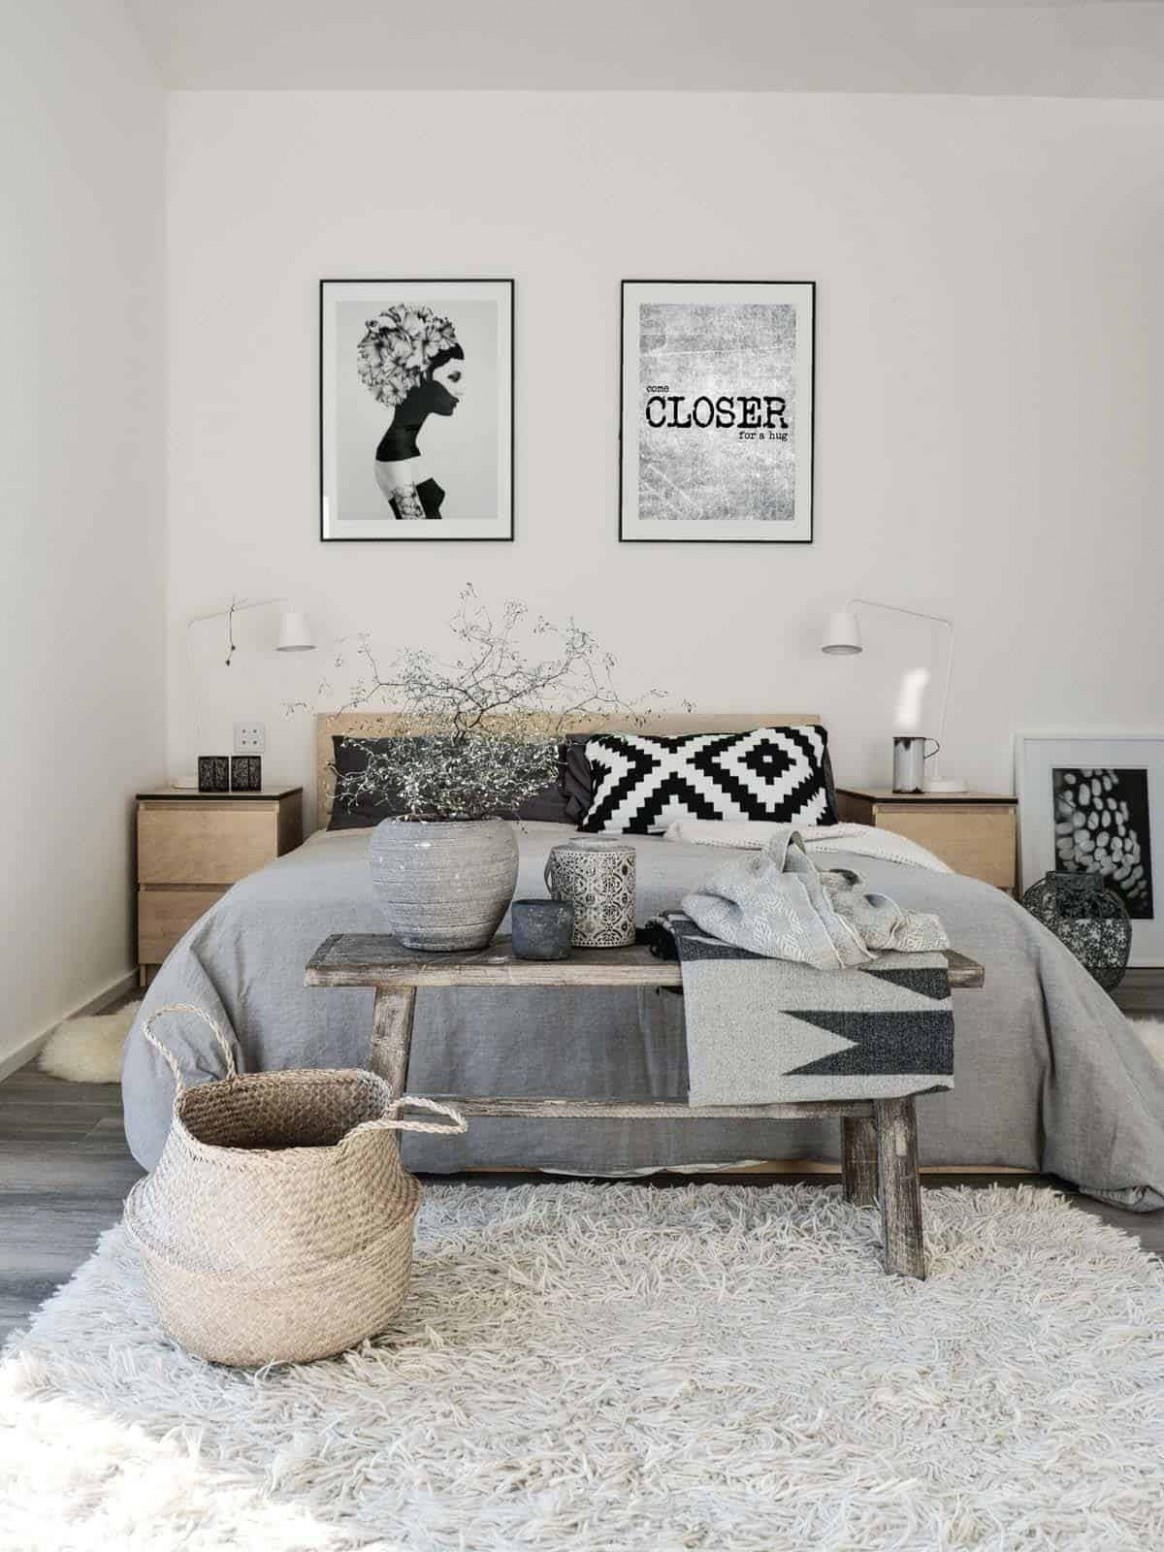 11 Scandinavian bedroom ideas that are modern and stylish - Bedroom Ideas Images